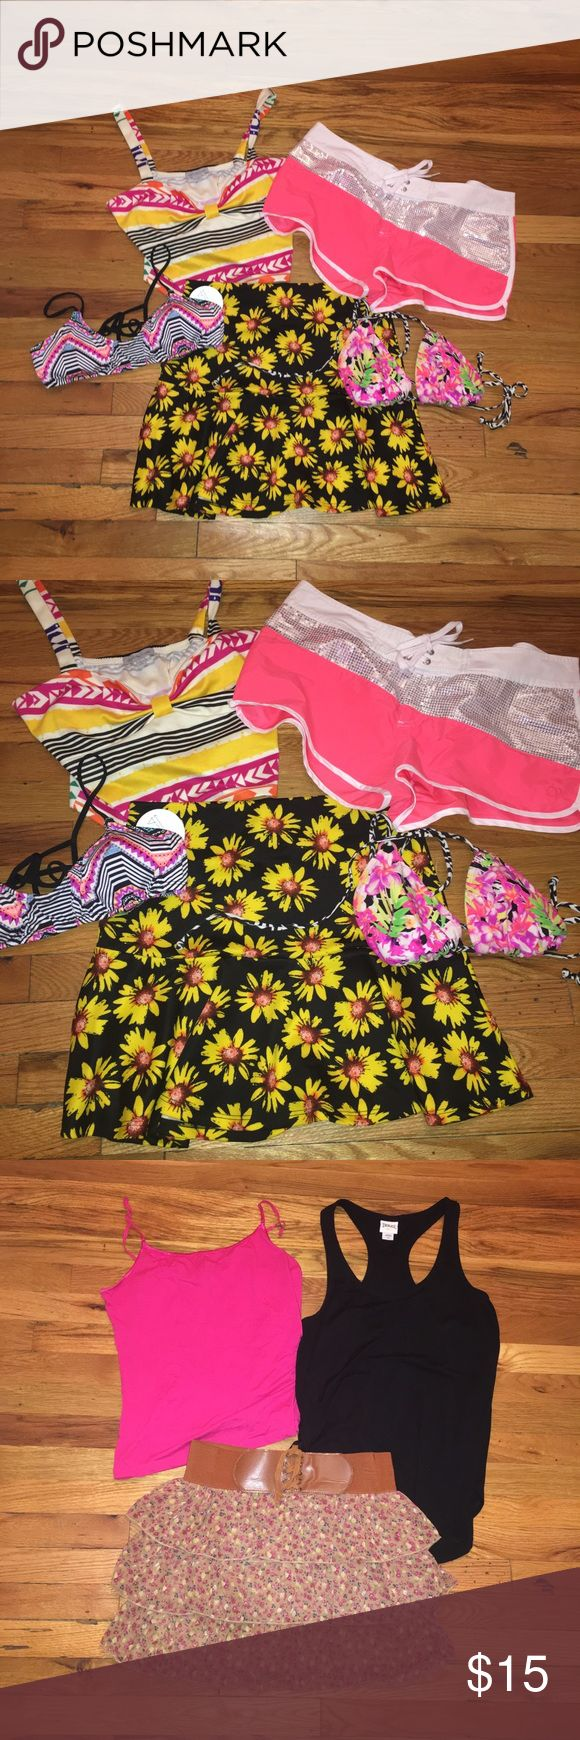 Size large clothing Lot Clothing lot size large includes: deb floral skirt, American rag butterfly high low skirt, forever 21 skirt, black tank, pink tank, Charlotte Russe multicolor crop top, flower ruffle mini skirt, two bikini tops, and sequin coral shorts Tops